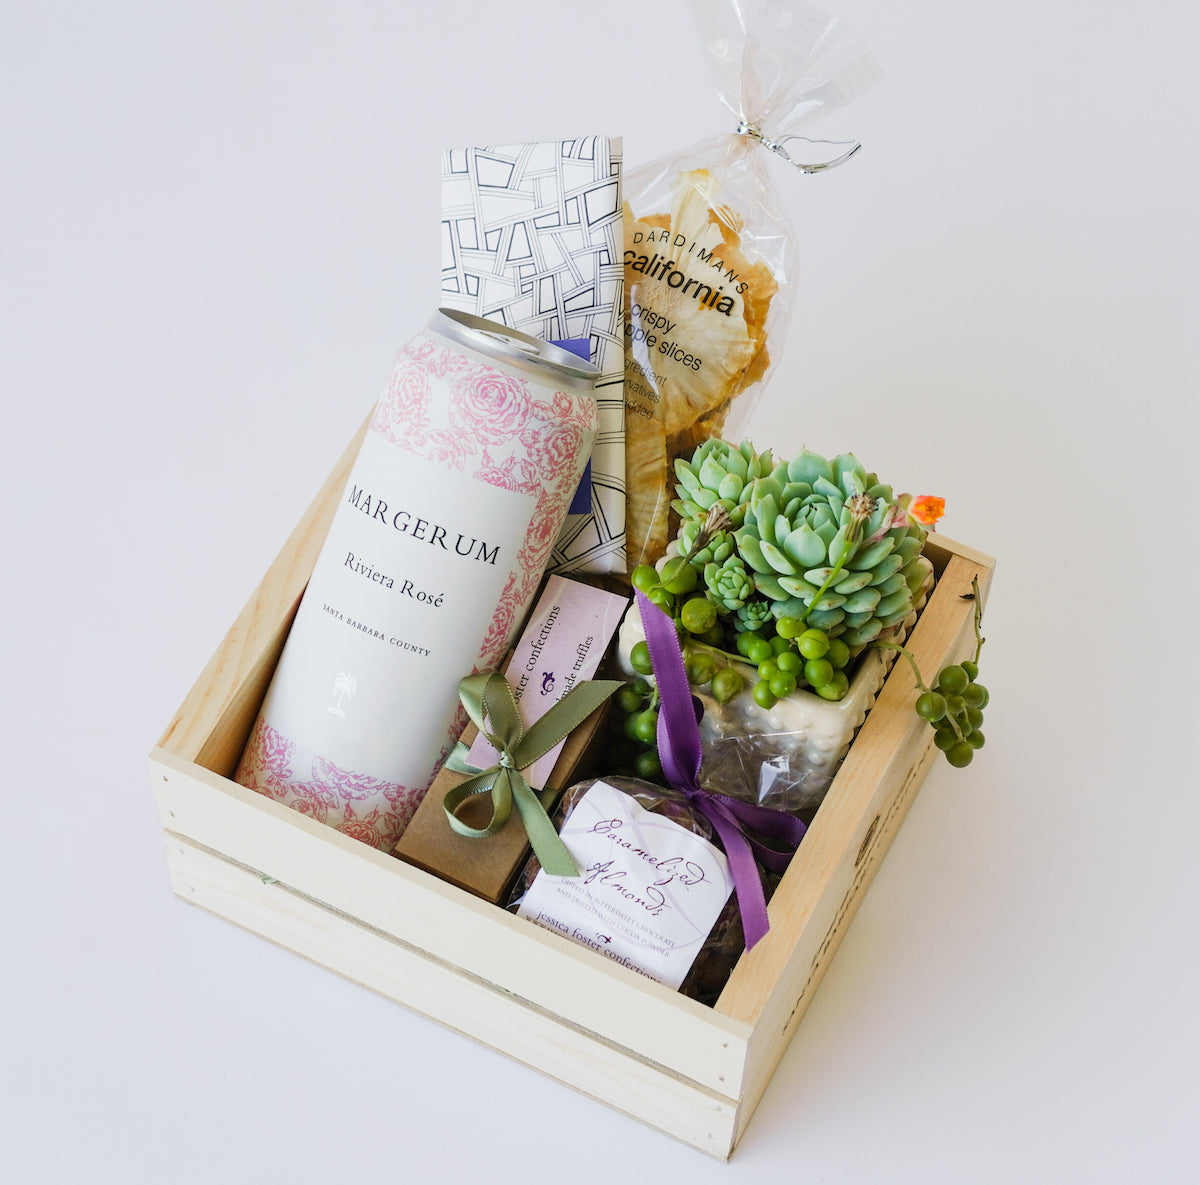 Margerum Rosé Gift Box with Succulent Plant | Hand Delivery in Santa ...